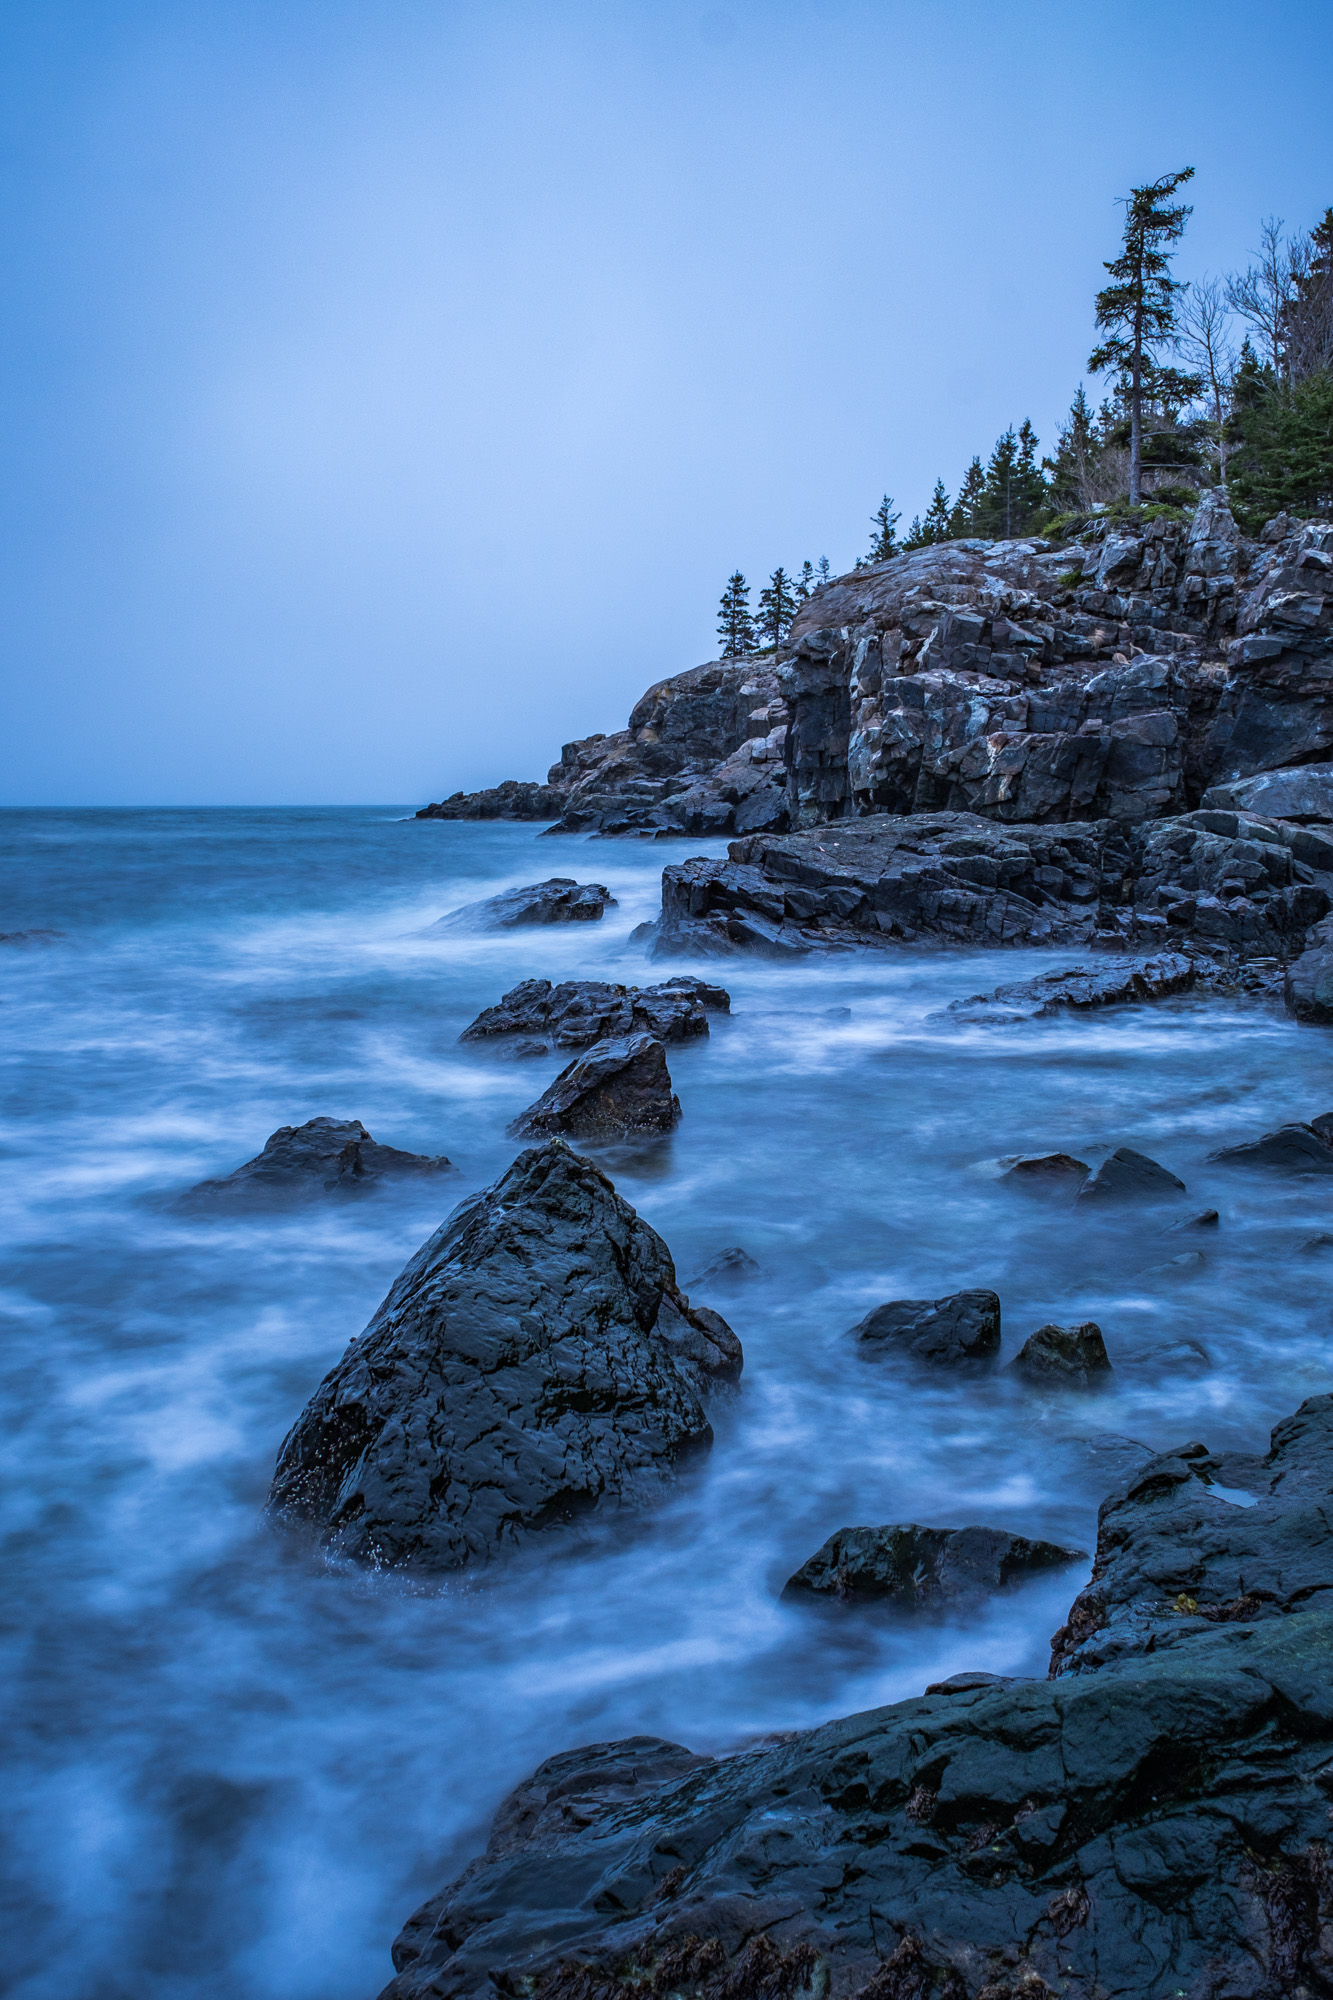 We ended up at Schooner Head near dusk. I love the moody feel of this photo....typical Maine weather.